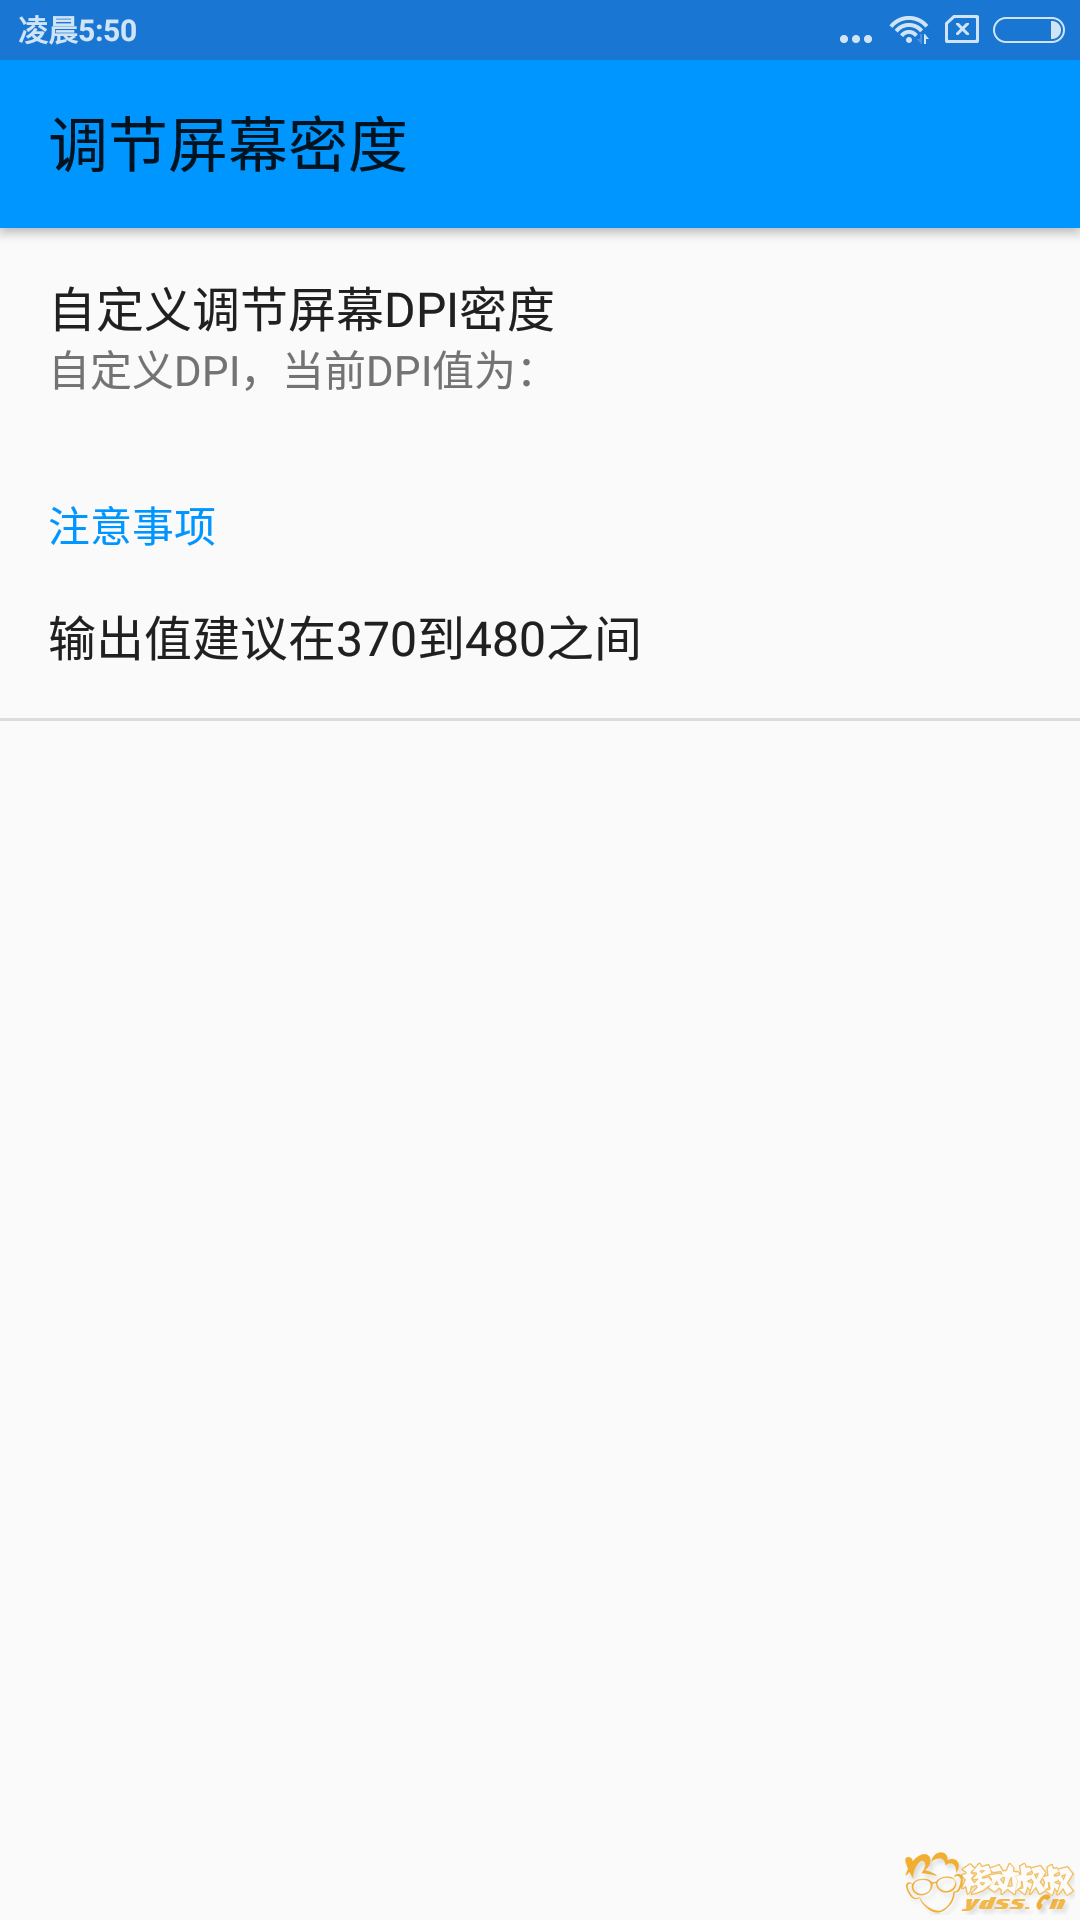 Screenshot_2018-03-13-05-50-07-839_com.zhanhong.t.png